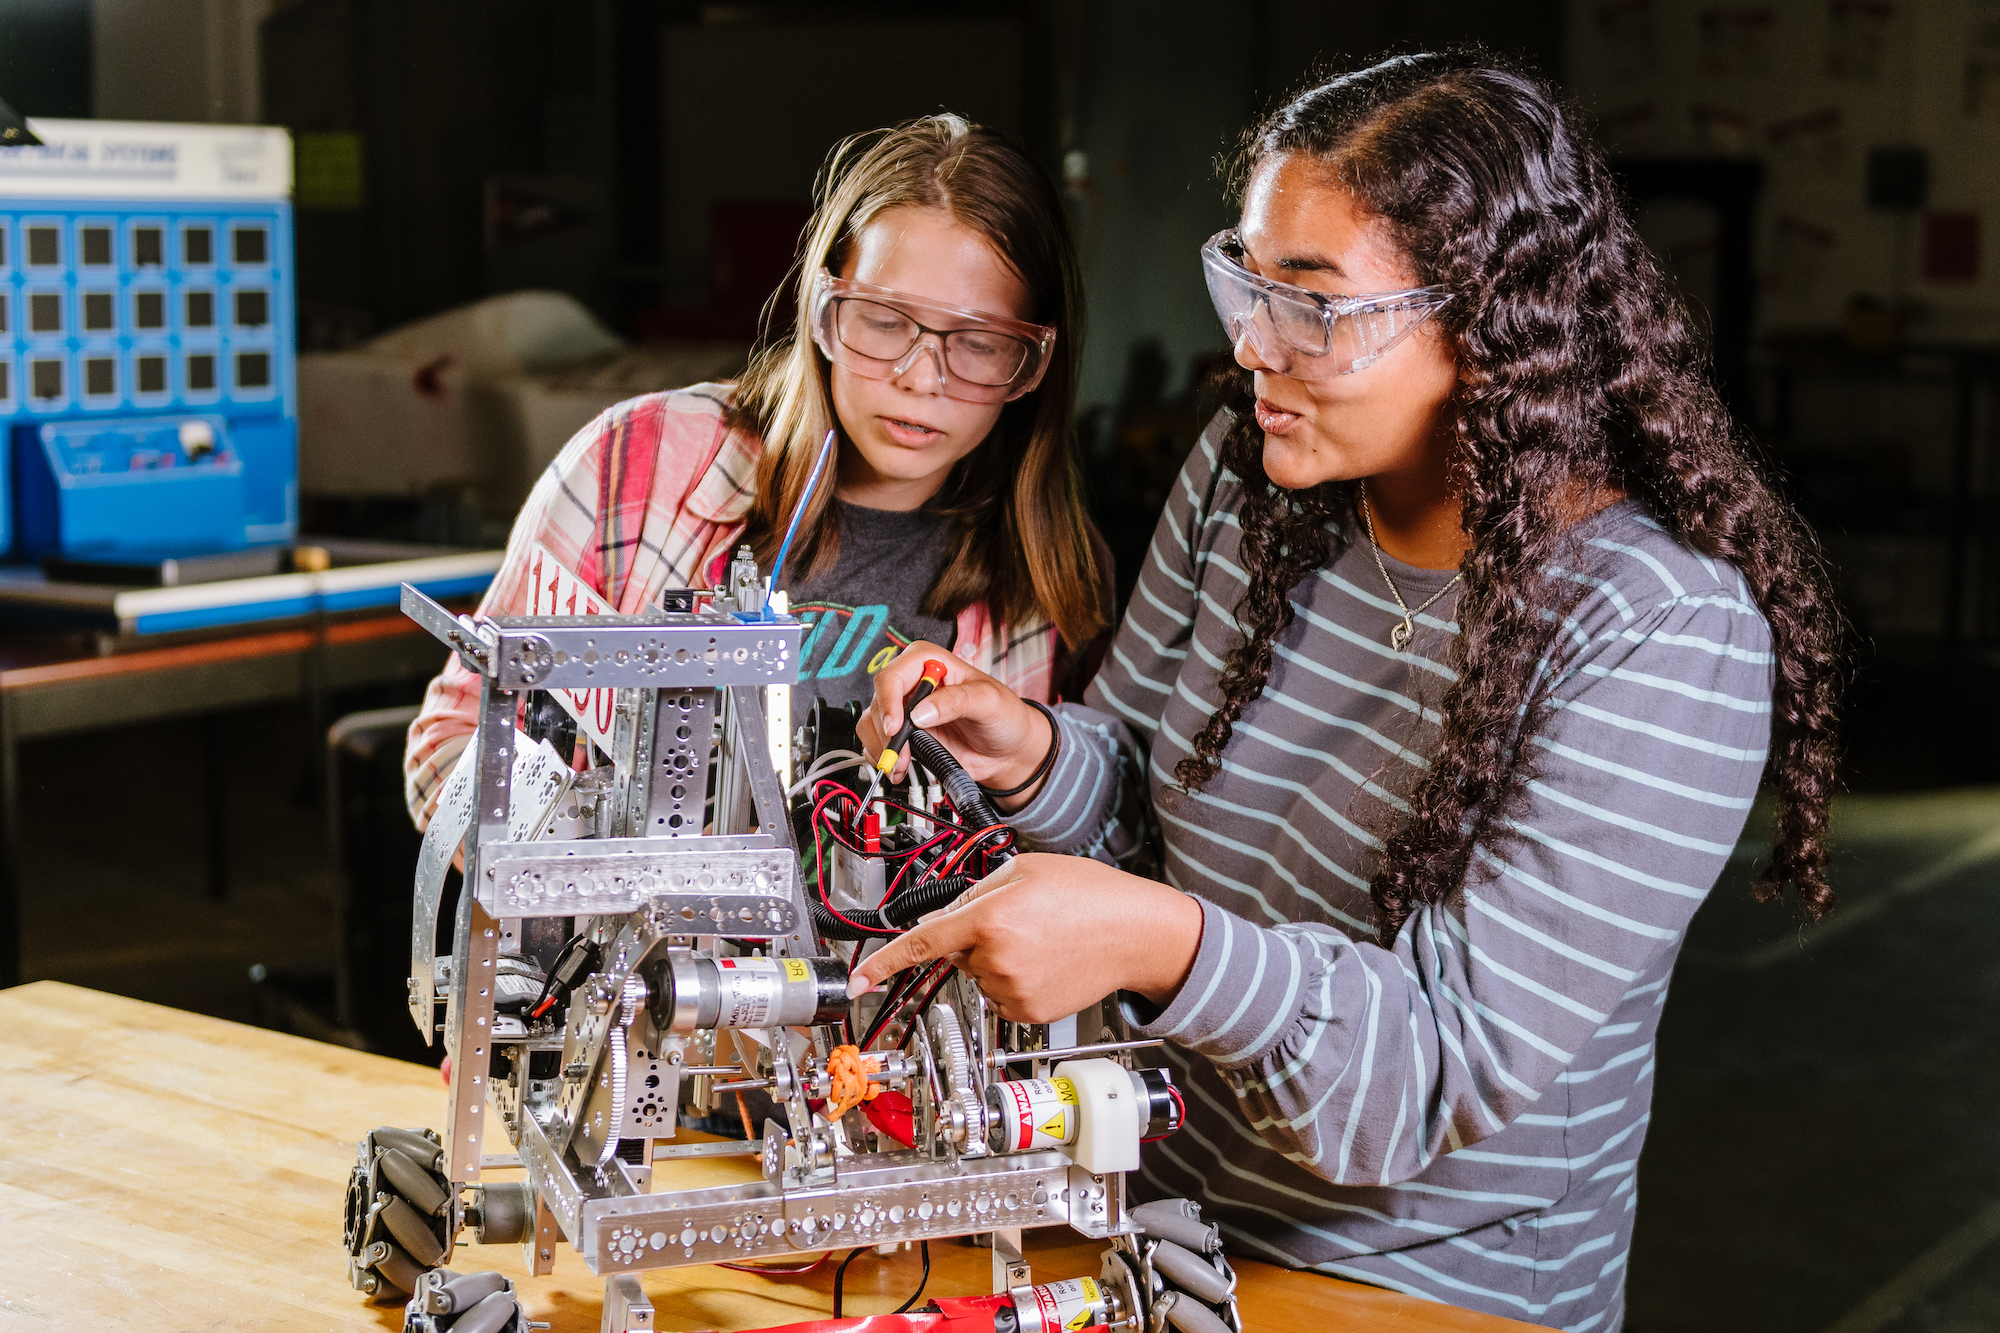 Two girl engineering students building a project